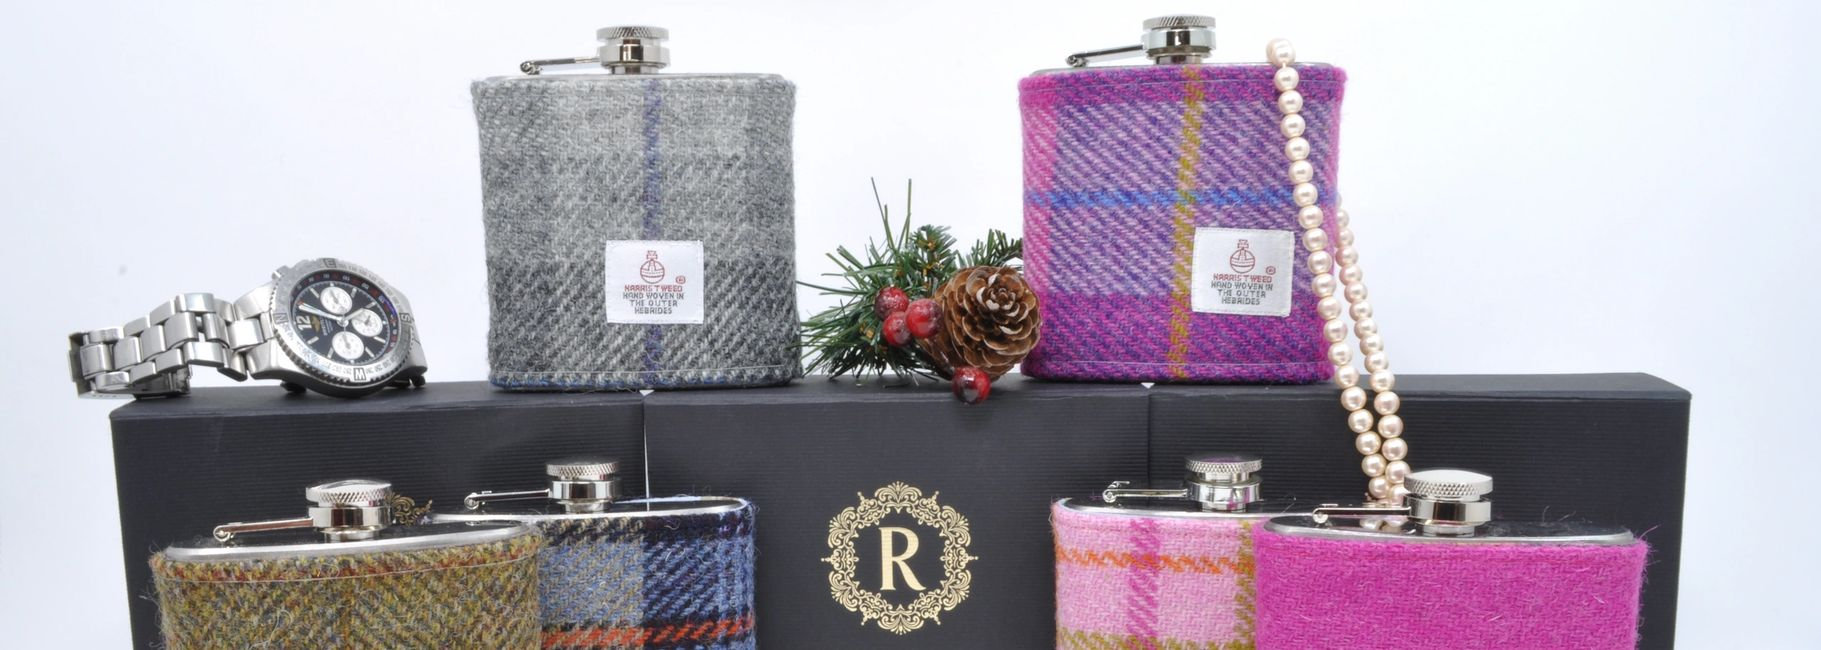 Mens Harris Tweed Hip Flasks and Ladies Hip Flasks in gift box Pink MacKenzie Olive Hunting Tweed